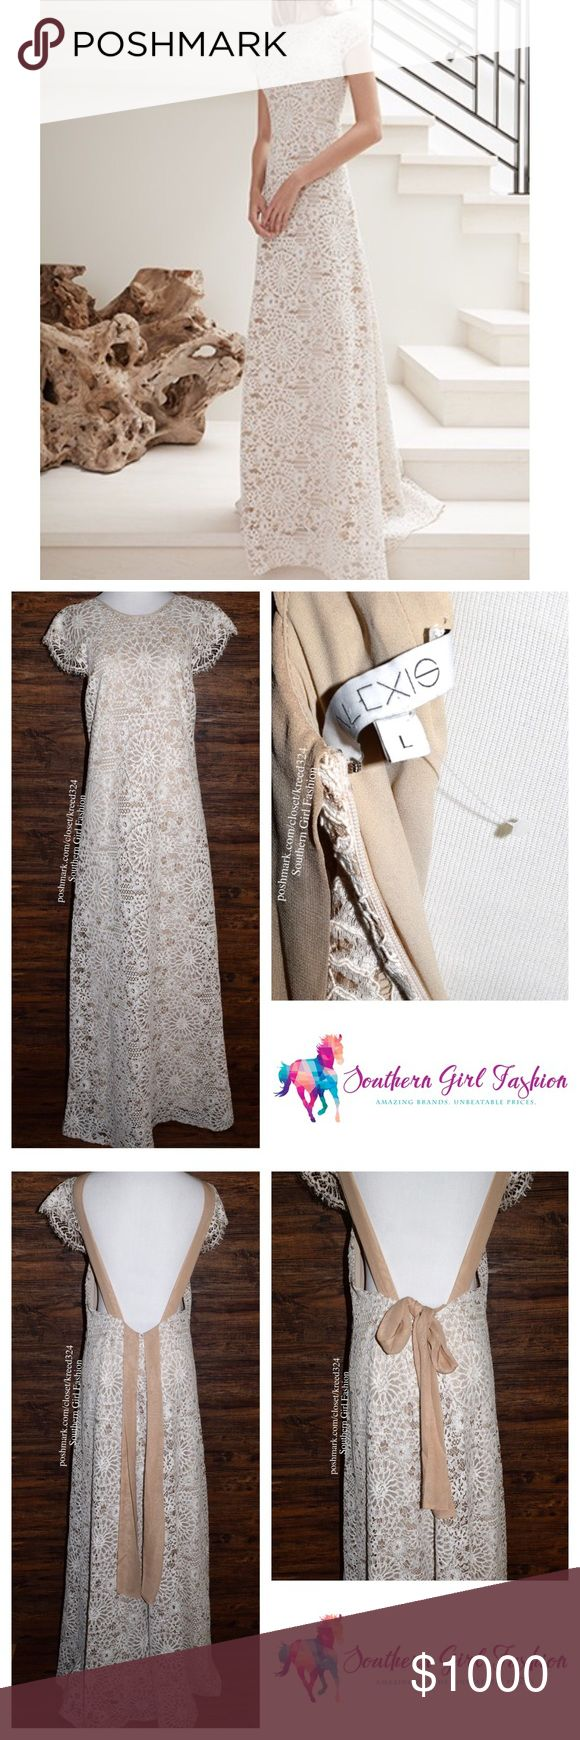 ALEXIS Dress Lace Maxi Cutout Back Gown Wedding Women's Size Large.  New Without Tags. $765 Retail + Tax.  • Gorgeous lace gown featuring intricate eyelet detailing & draped silhouette. • Open, dropped back with optional bow back tie and hidden zip closure. • Fully lined (beige). • Perfect for your most special event!  • Measurements in comment(s) section below.  {Southern Girl Fashion - Closet Policy}   ✔️ Same-Business-Day Shipping (10am CT). ✔️ Reasonable best offer considered when…